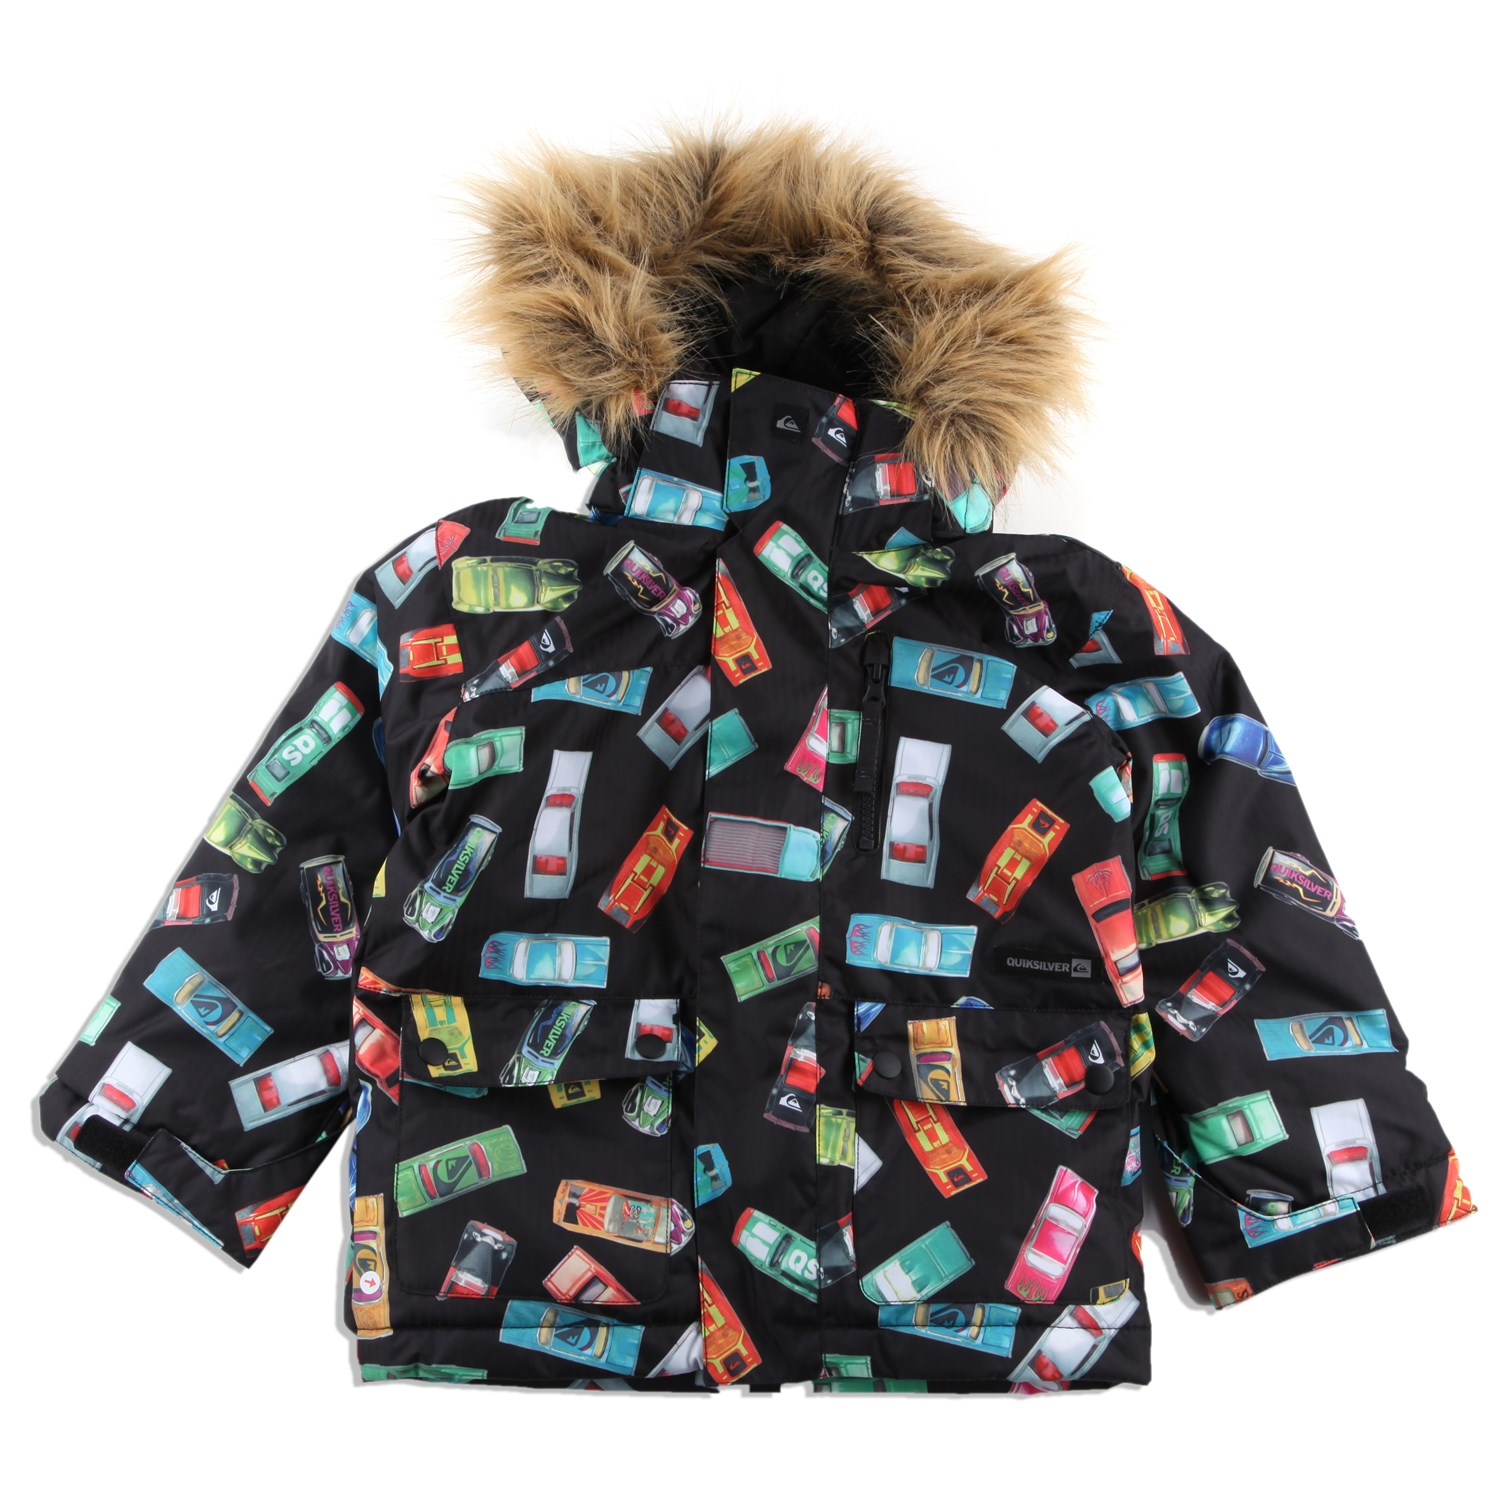 969a9242b Quiksilver Shift Jacket - Toddler - Boy s